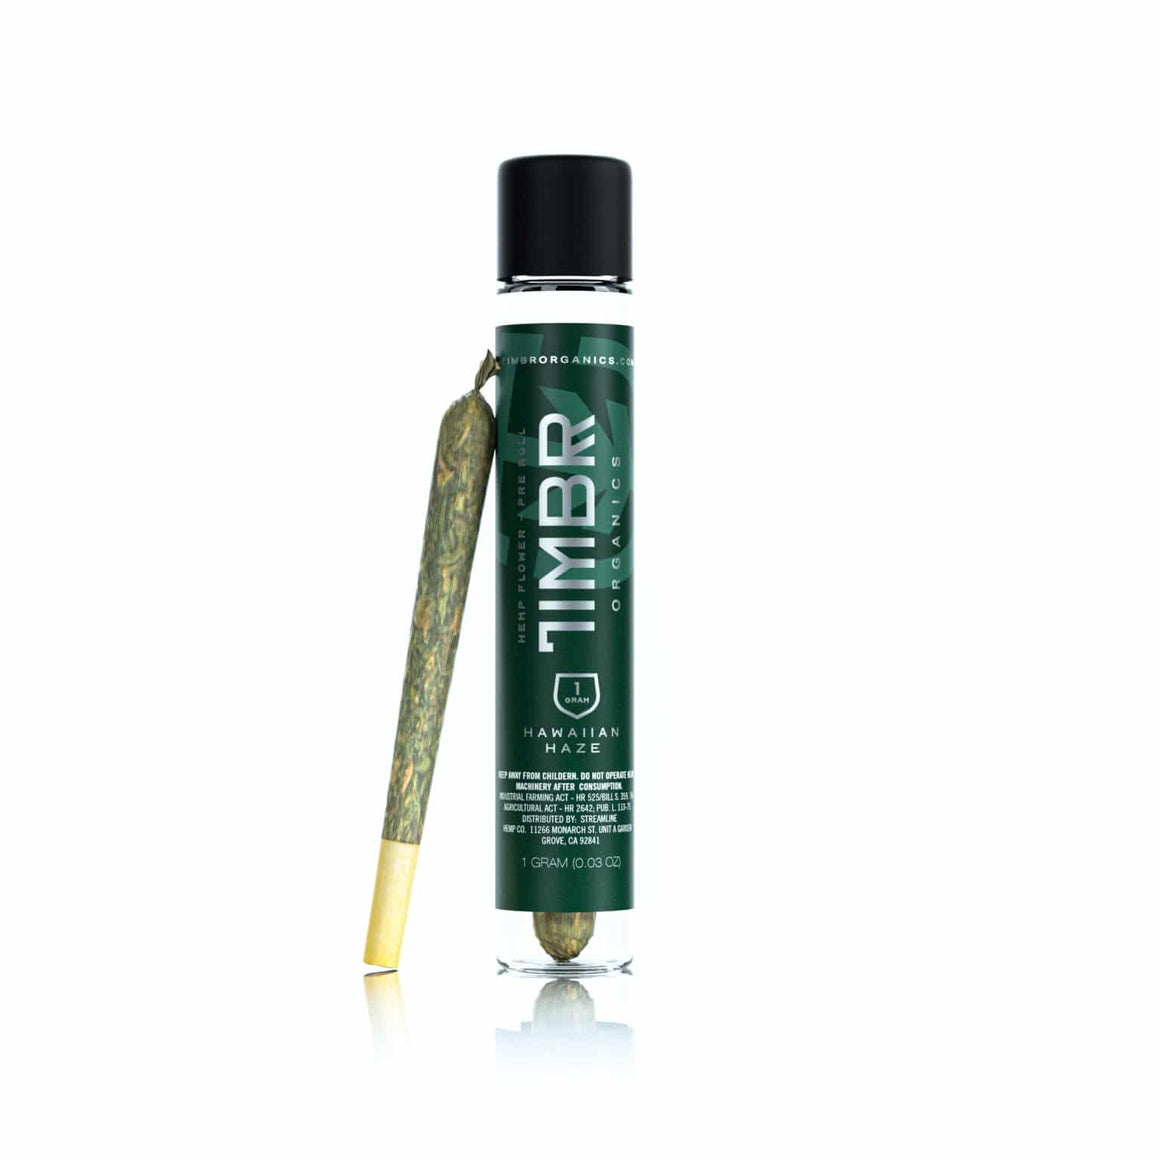 TIMBR Organics Hemp Flower Pre-Roll - Hawaiian Haze - Modest Hemp Co.